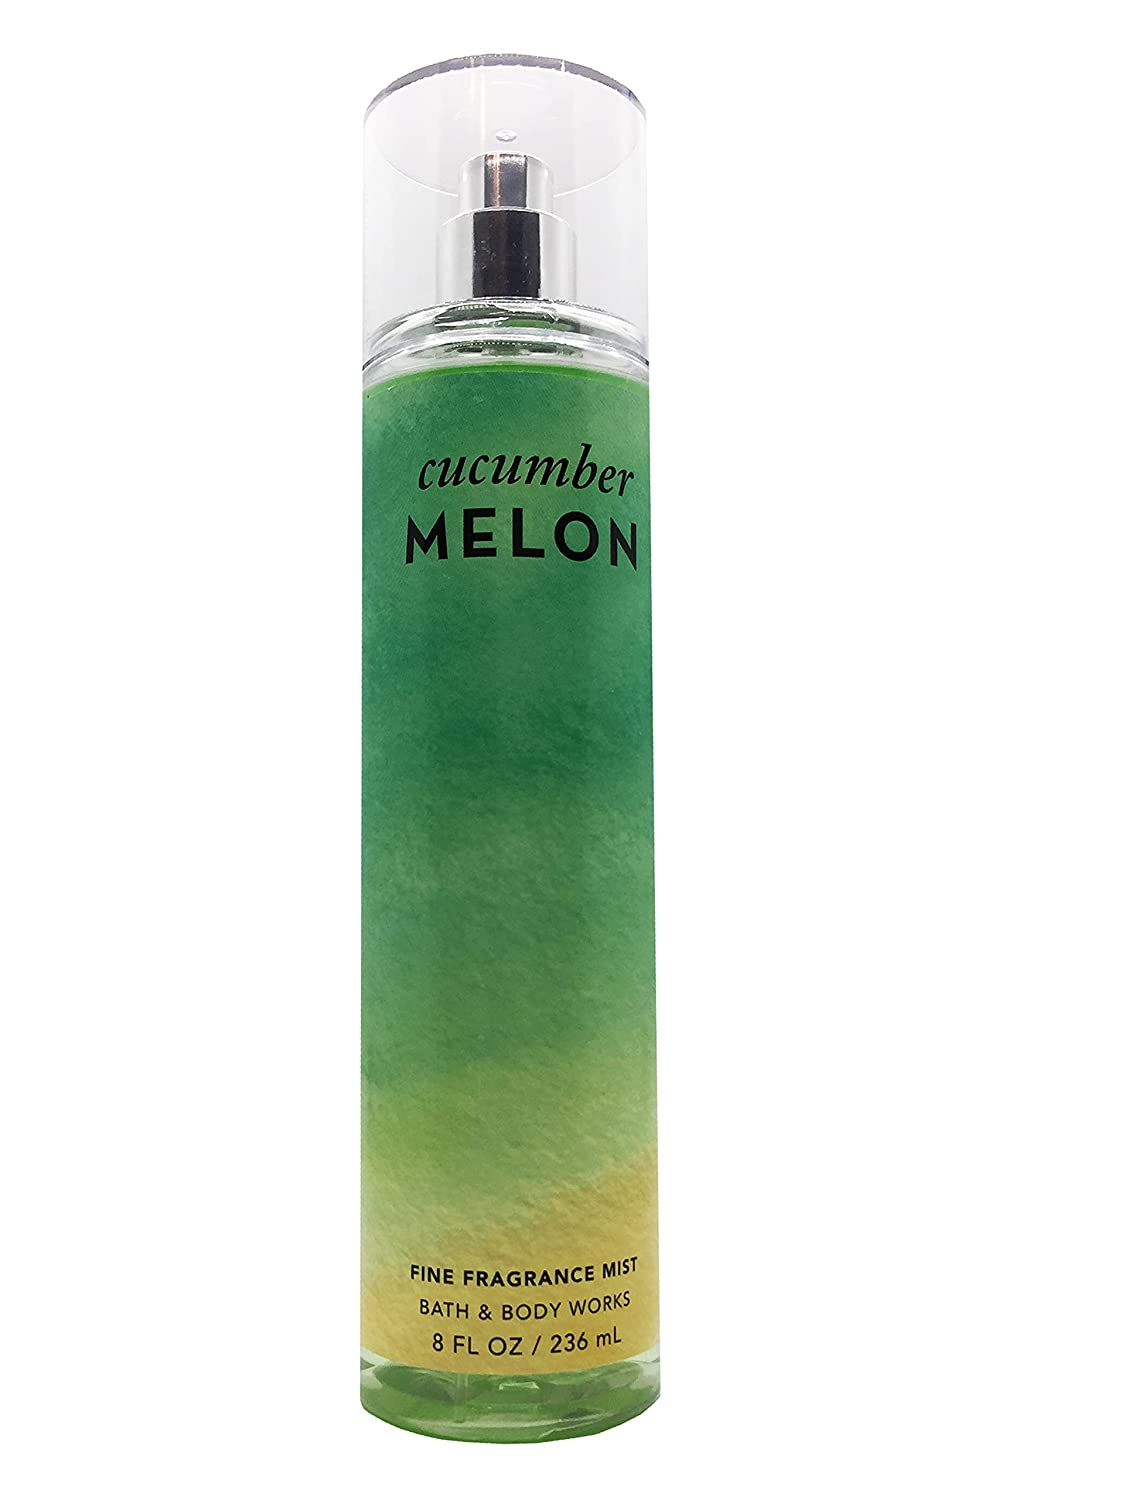 Bath and Body Works CUCUMBER MELON Fragrance Some reservation Max 87% OFF Fluid O Mist 8 Fine